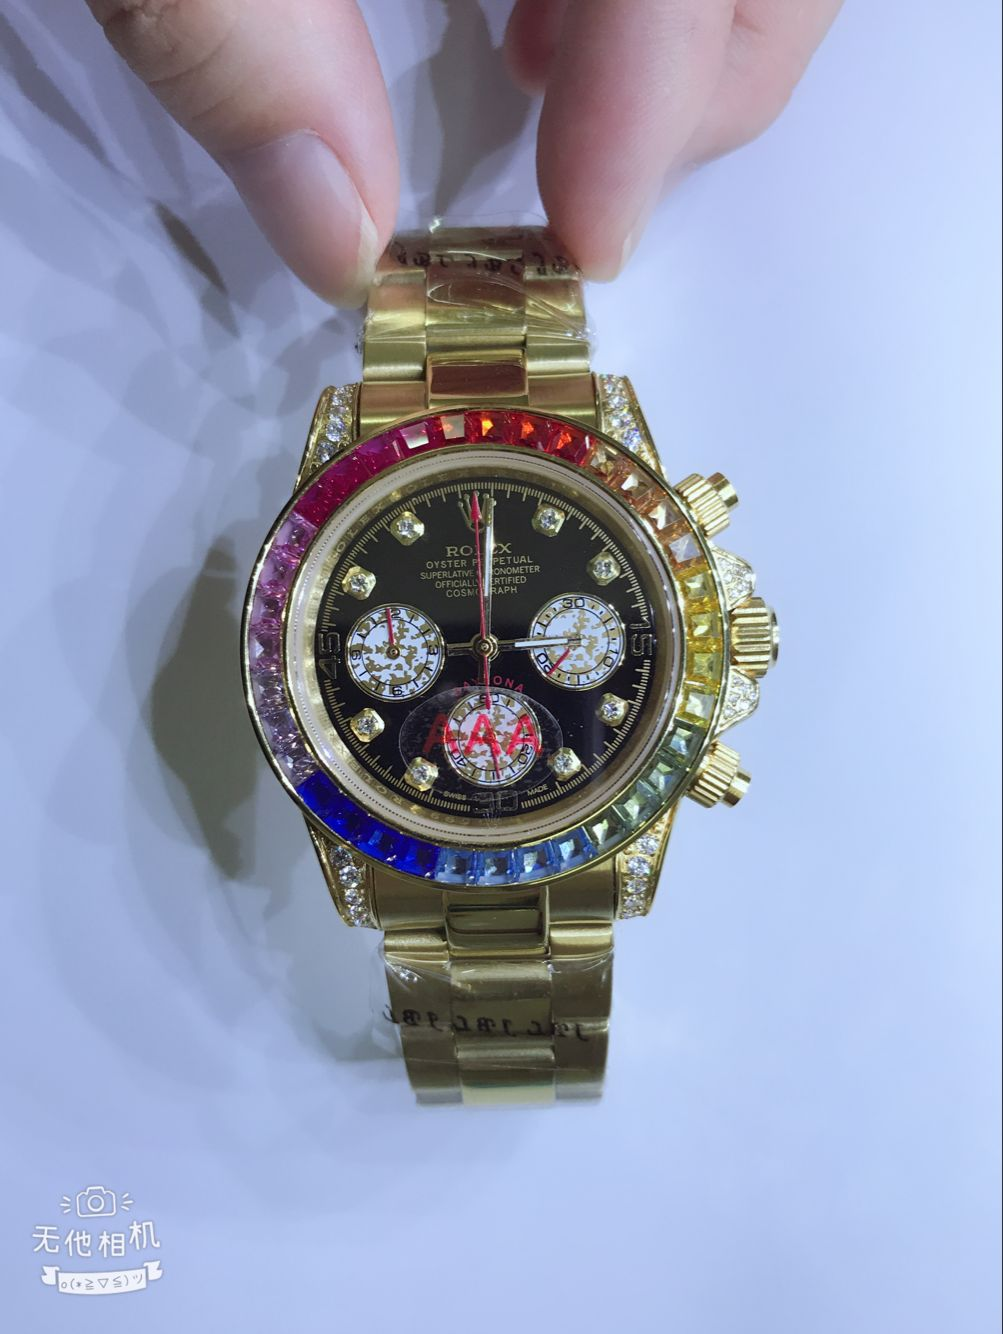 Copy Rolex Rainbow Daytona Black Dial Gold Case Watch